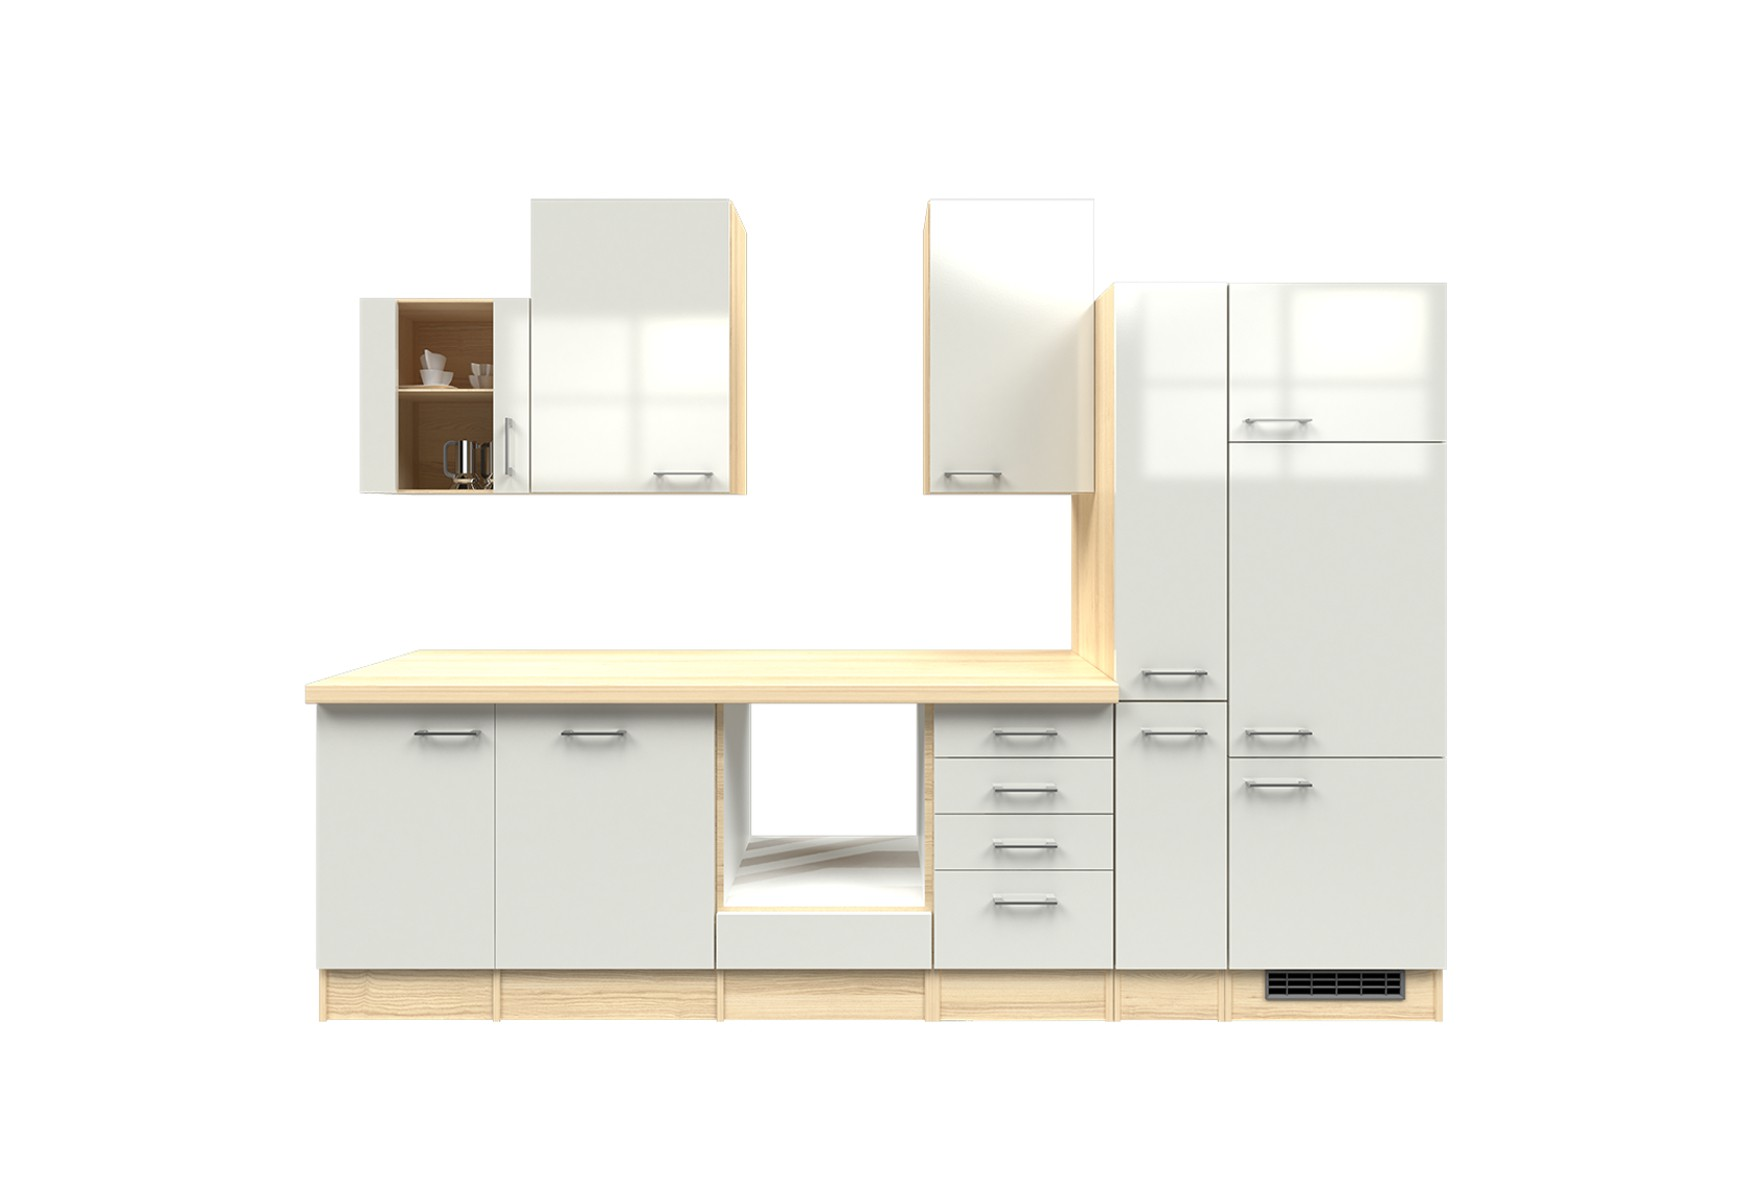 k chenzeile florenz k chenleerblock mit glash ngeschrank 310 cm weiss ebay. Black Bedroom Furniture Sets. Home Design Ideas